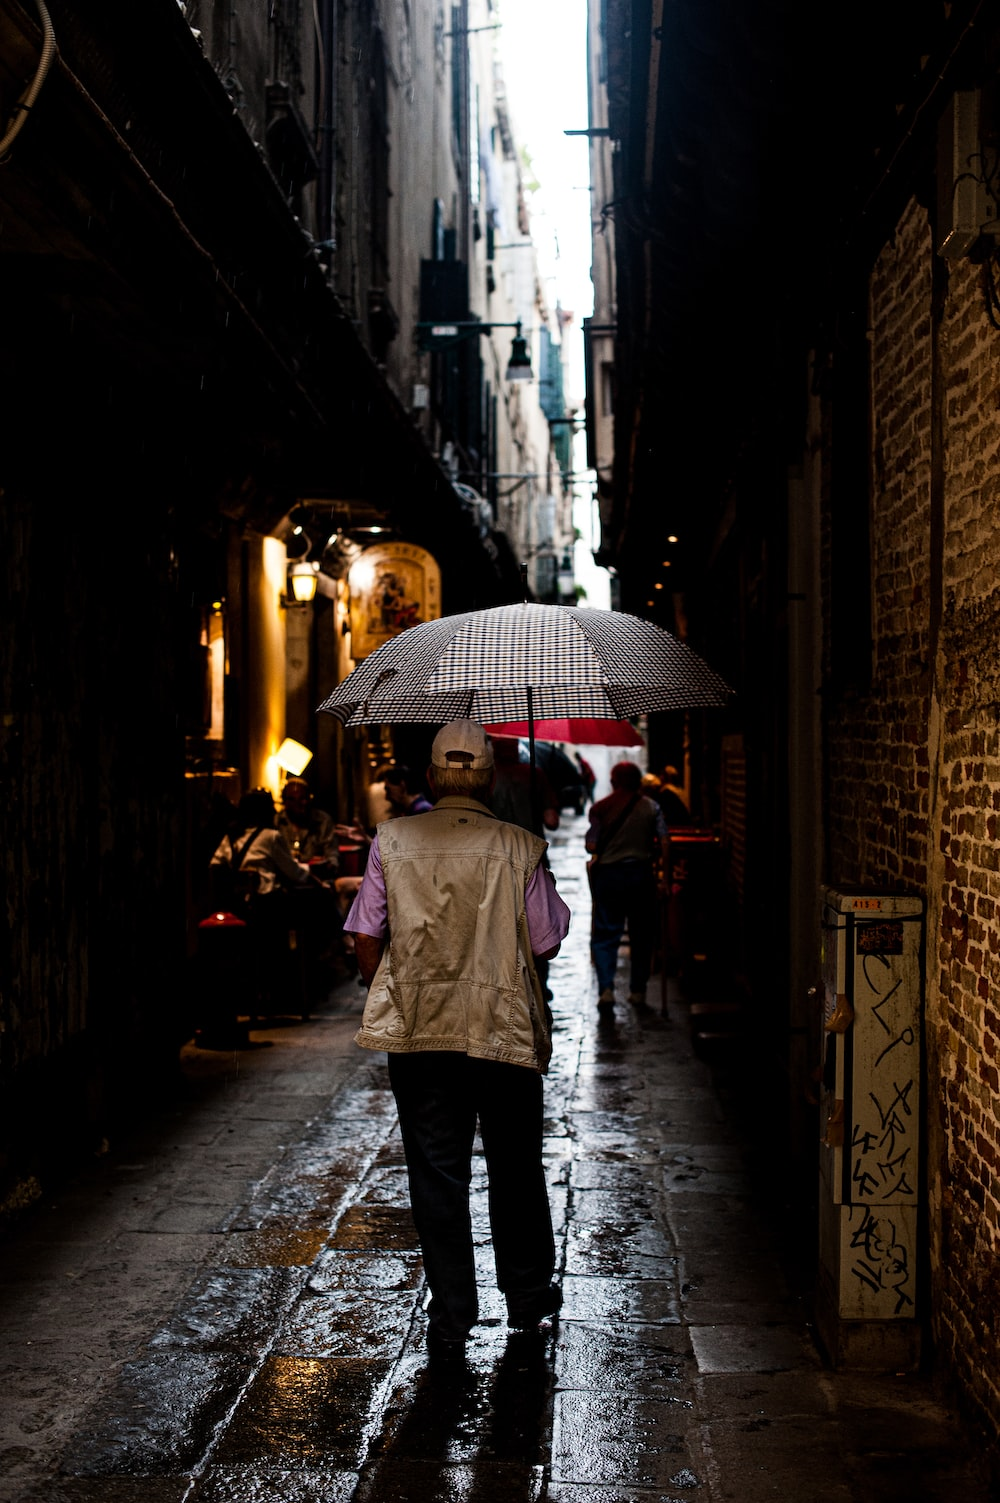 person in white coat holding umbrella walking on sidewalk during night time